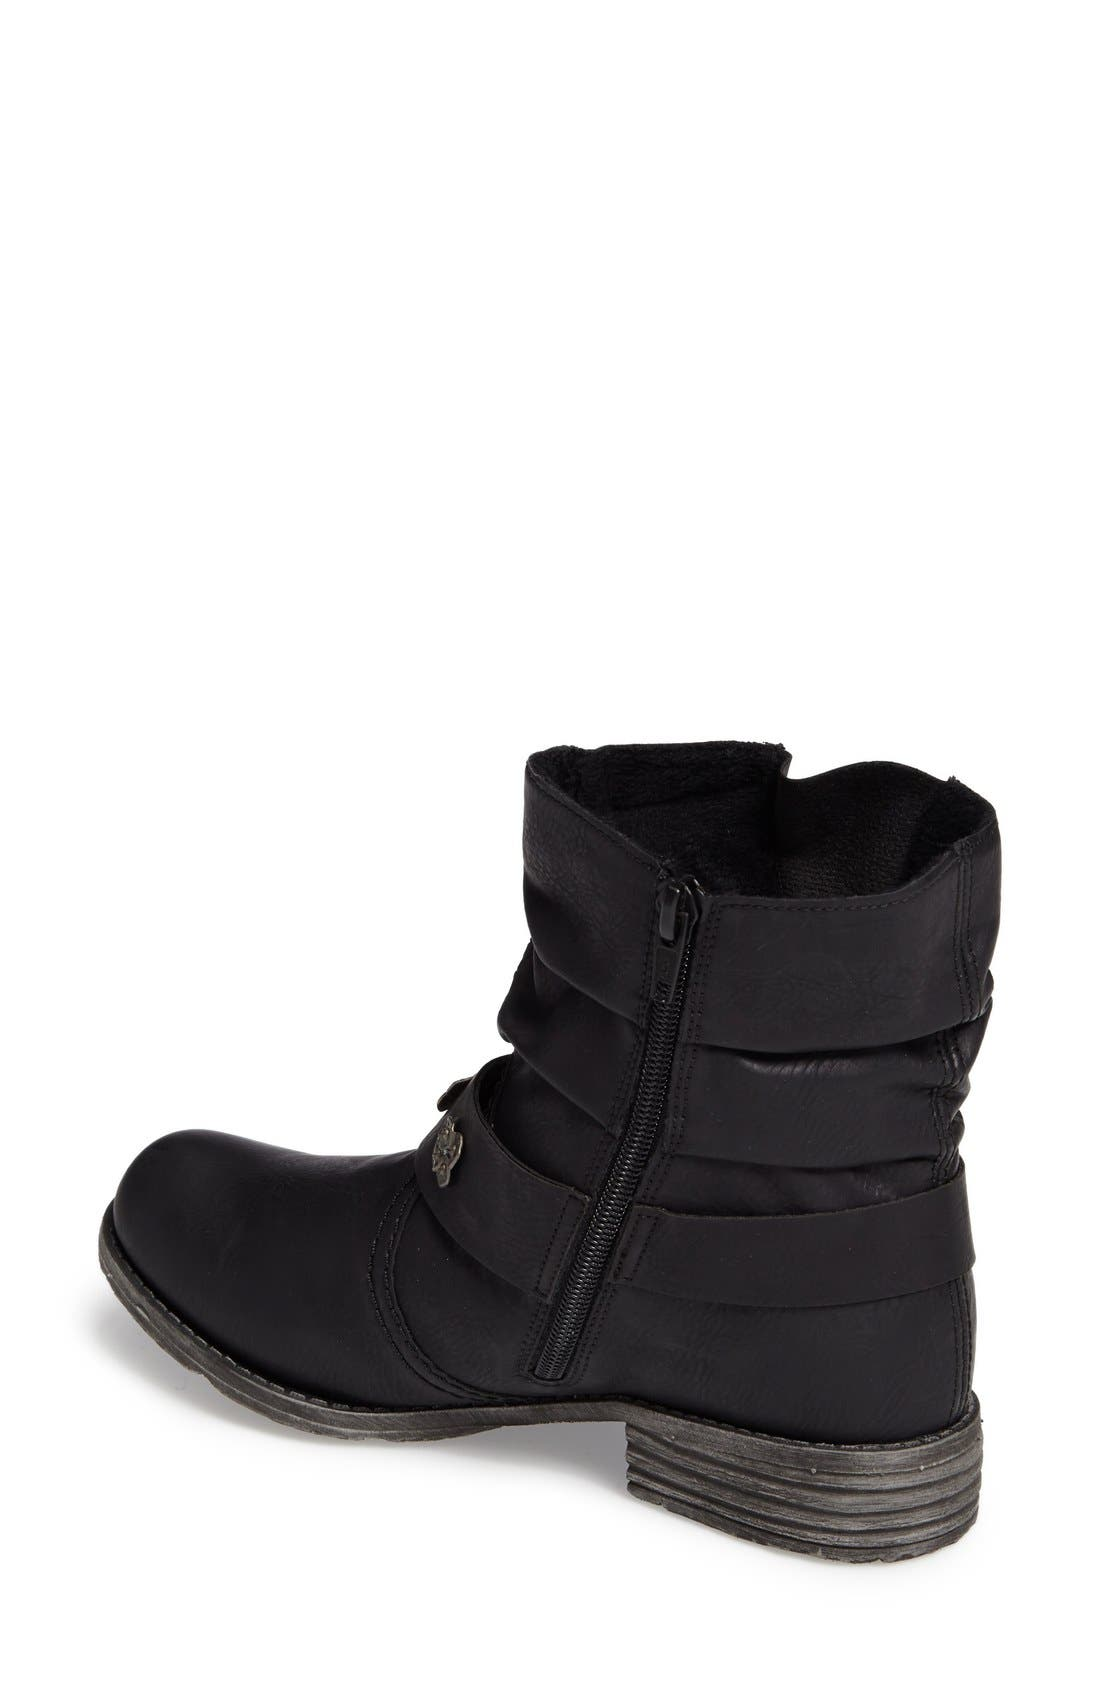 Rieker Antistress 'Peggy' Boot,                             Alternate thumbnail 2, color,                             001